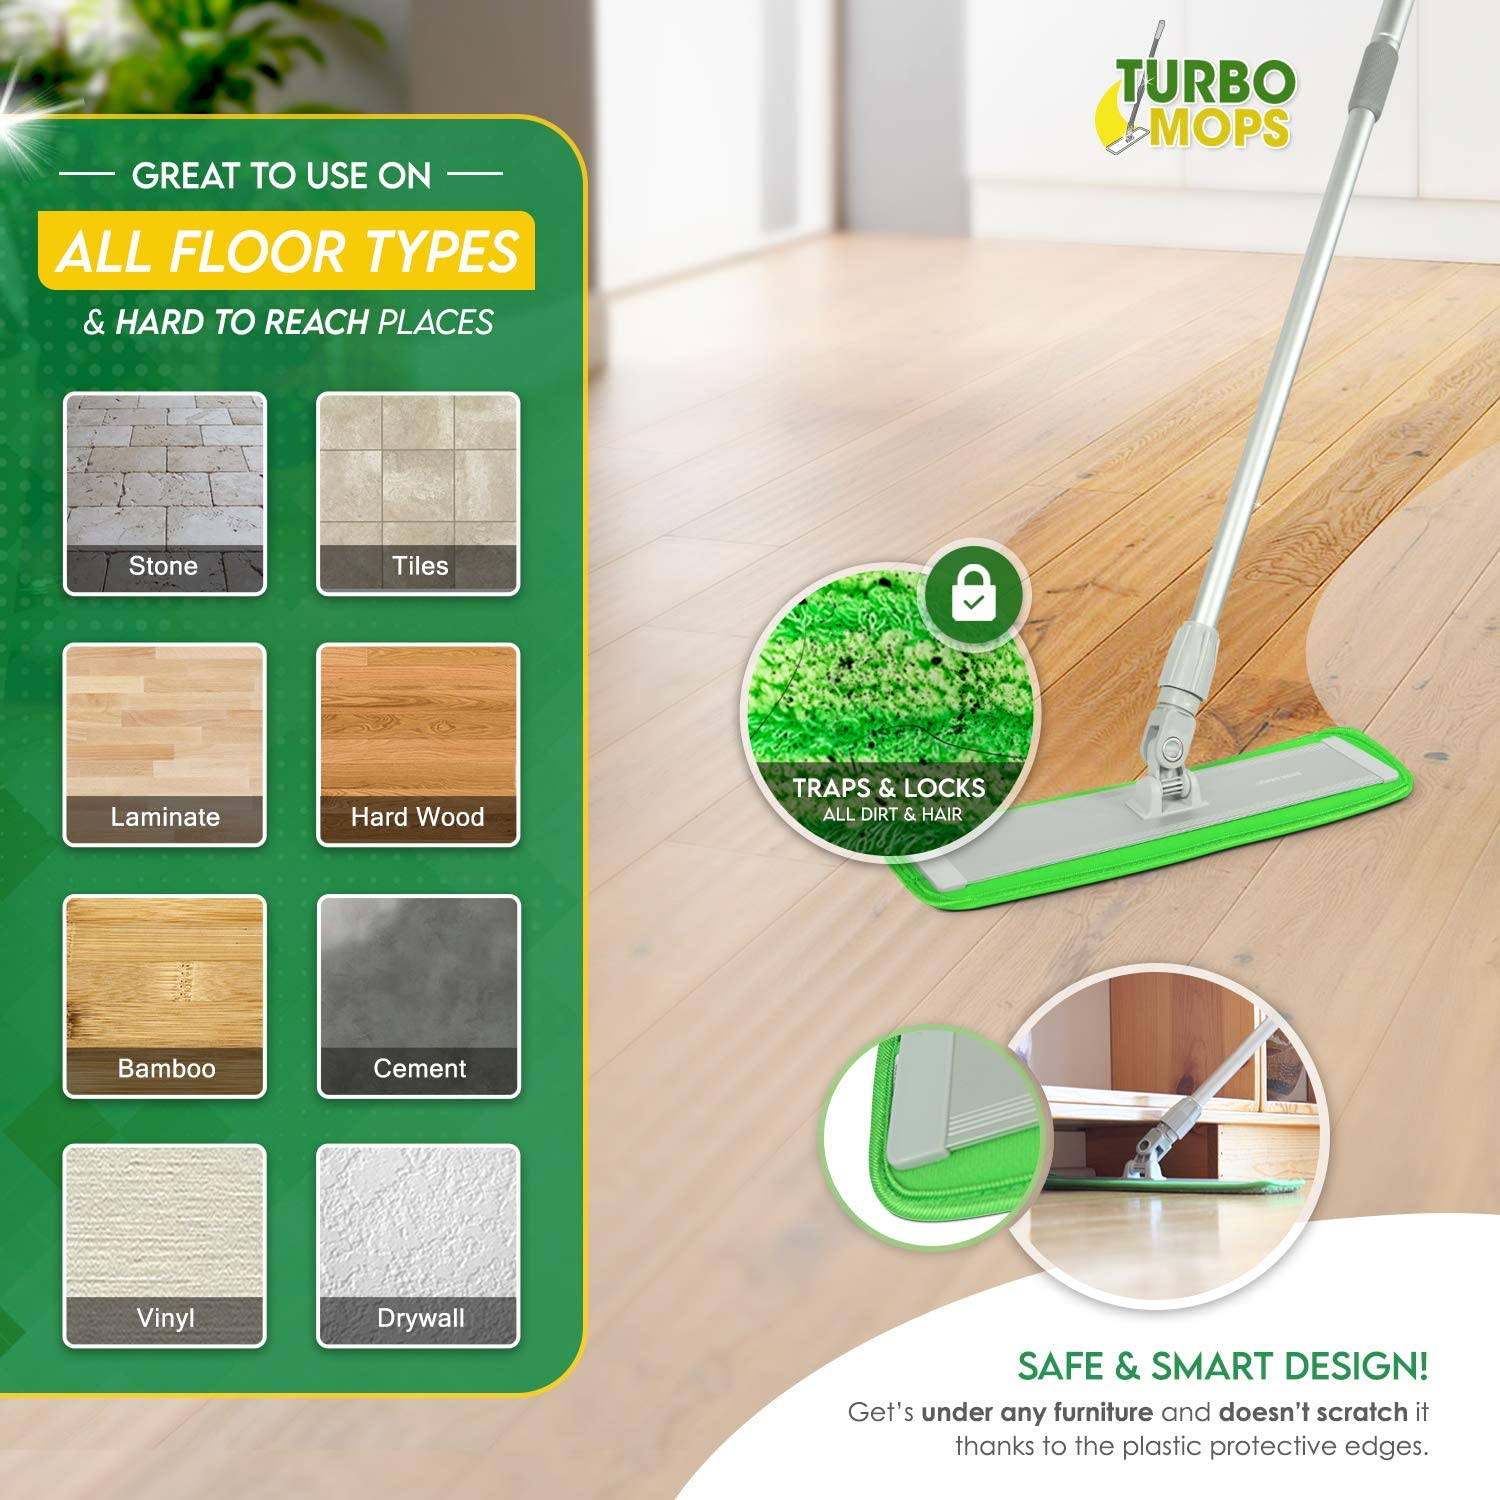 Best Wet Mop for Tile Floors